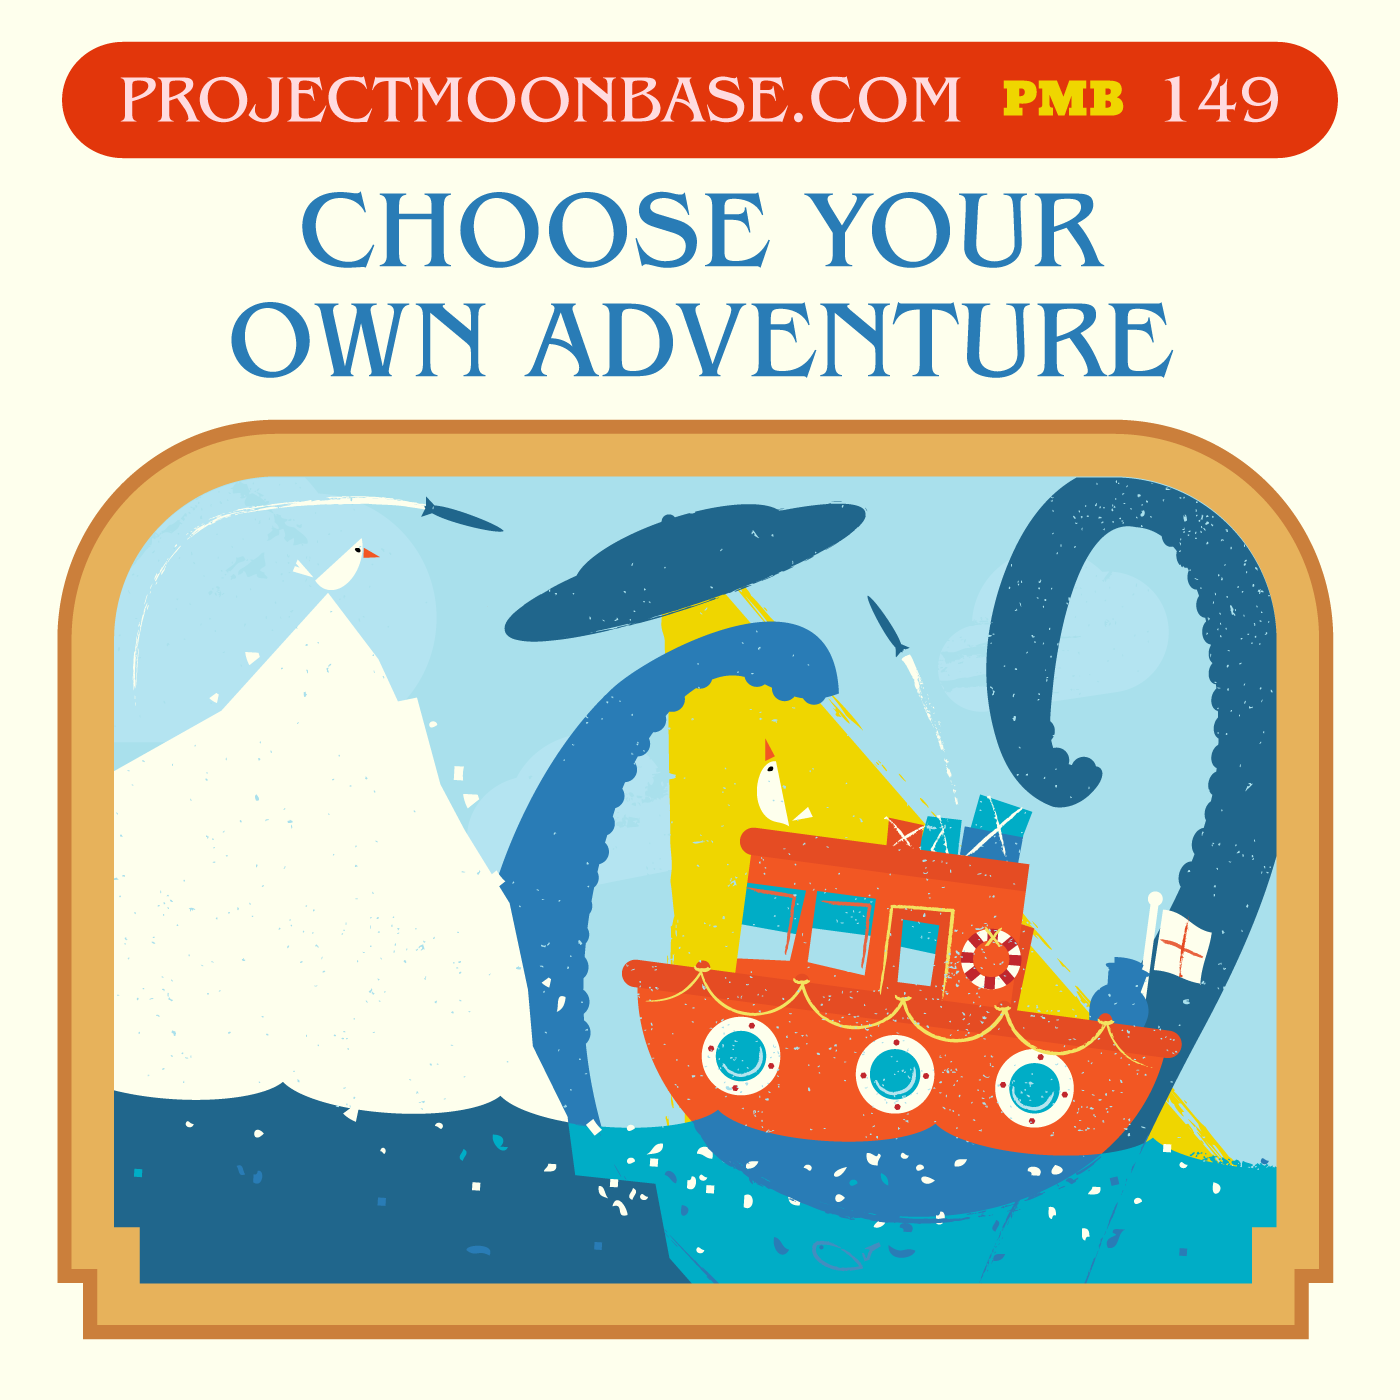 PMB149 Choose Your Own Adventure